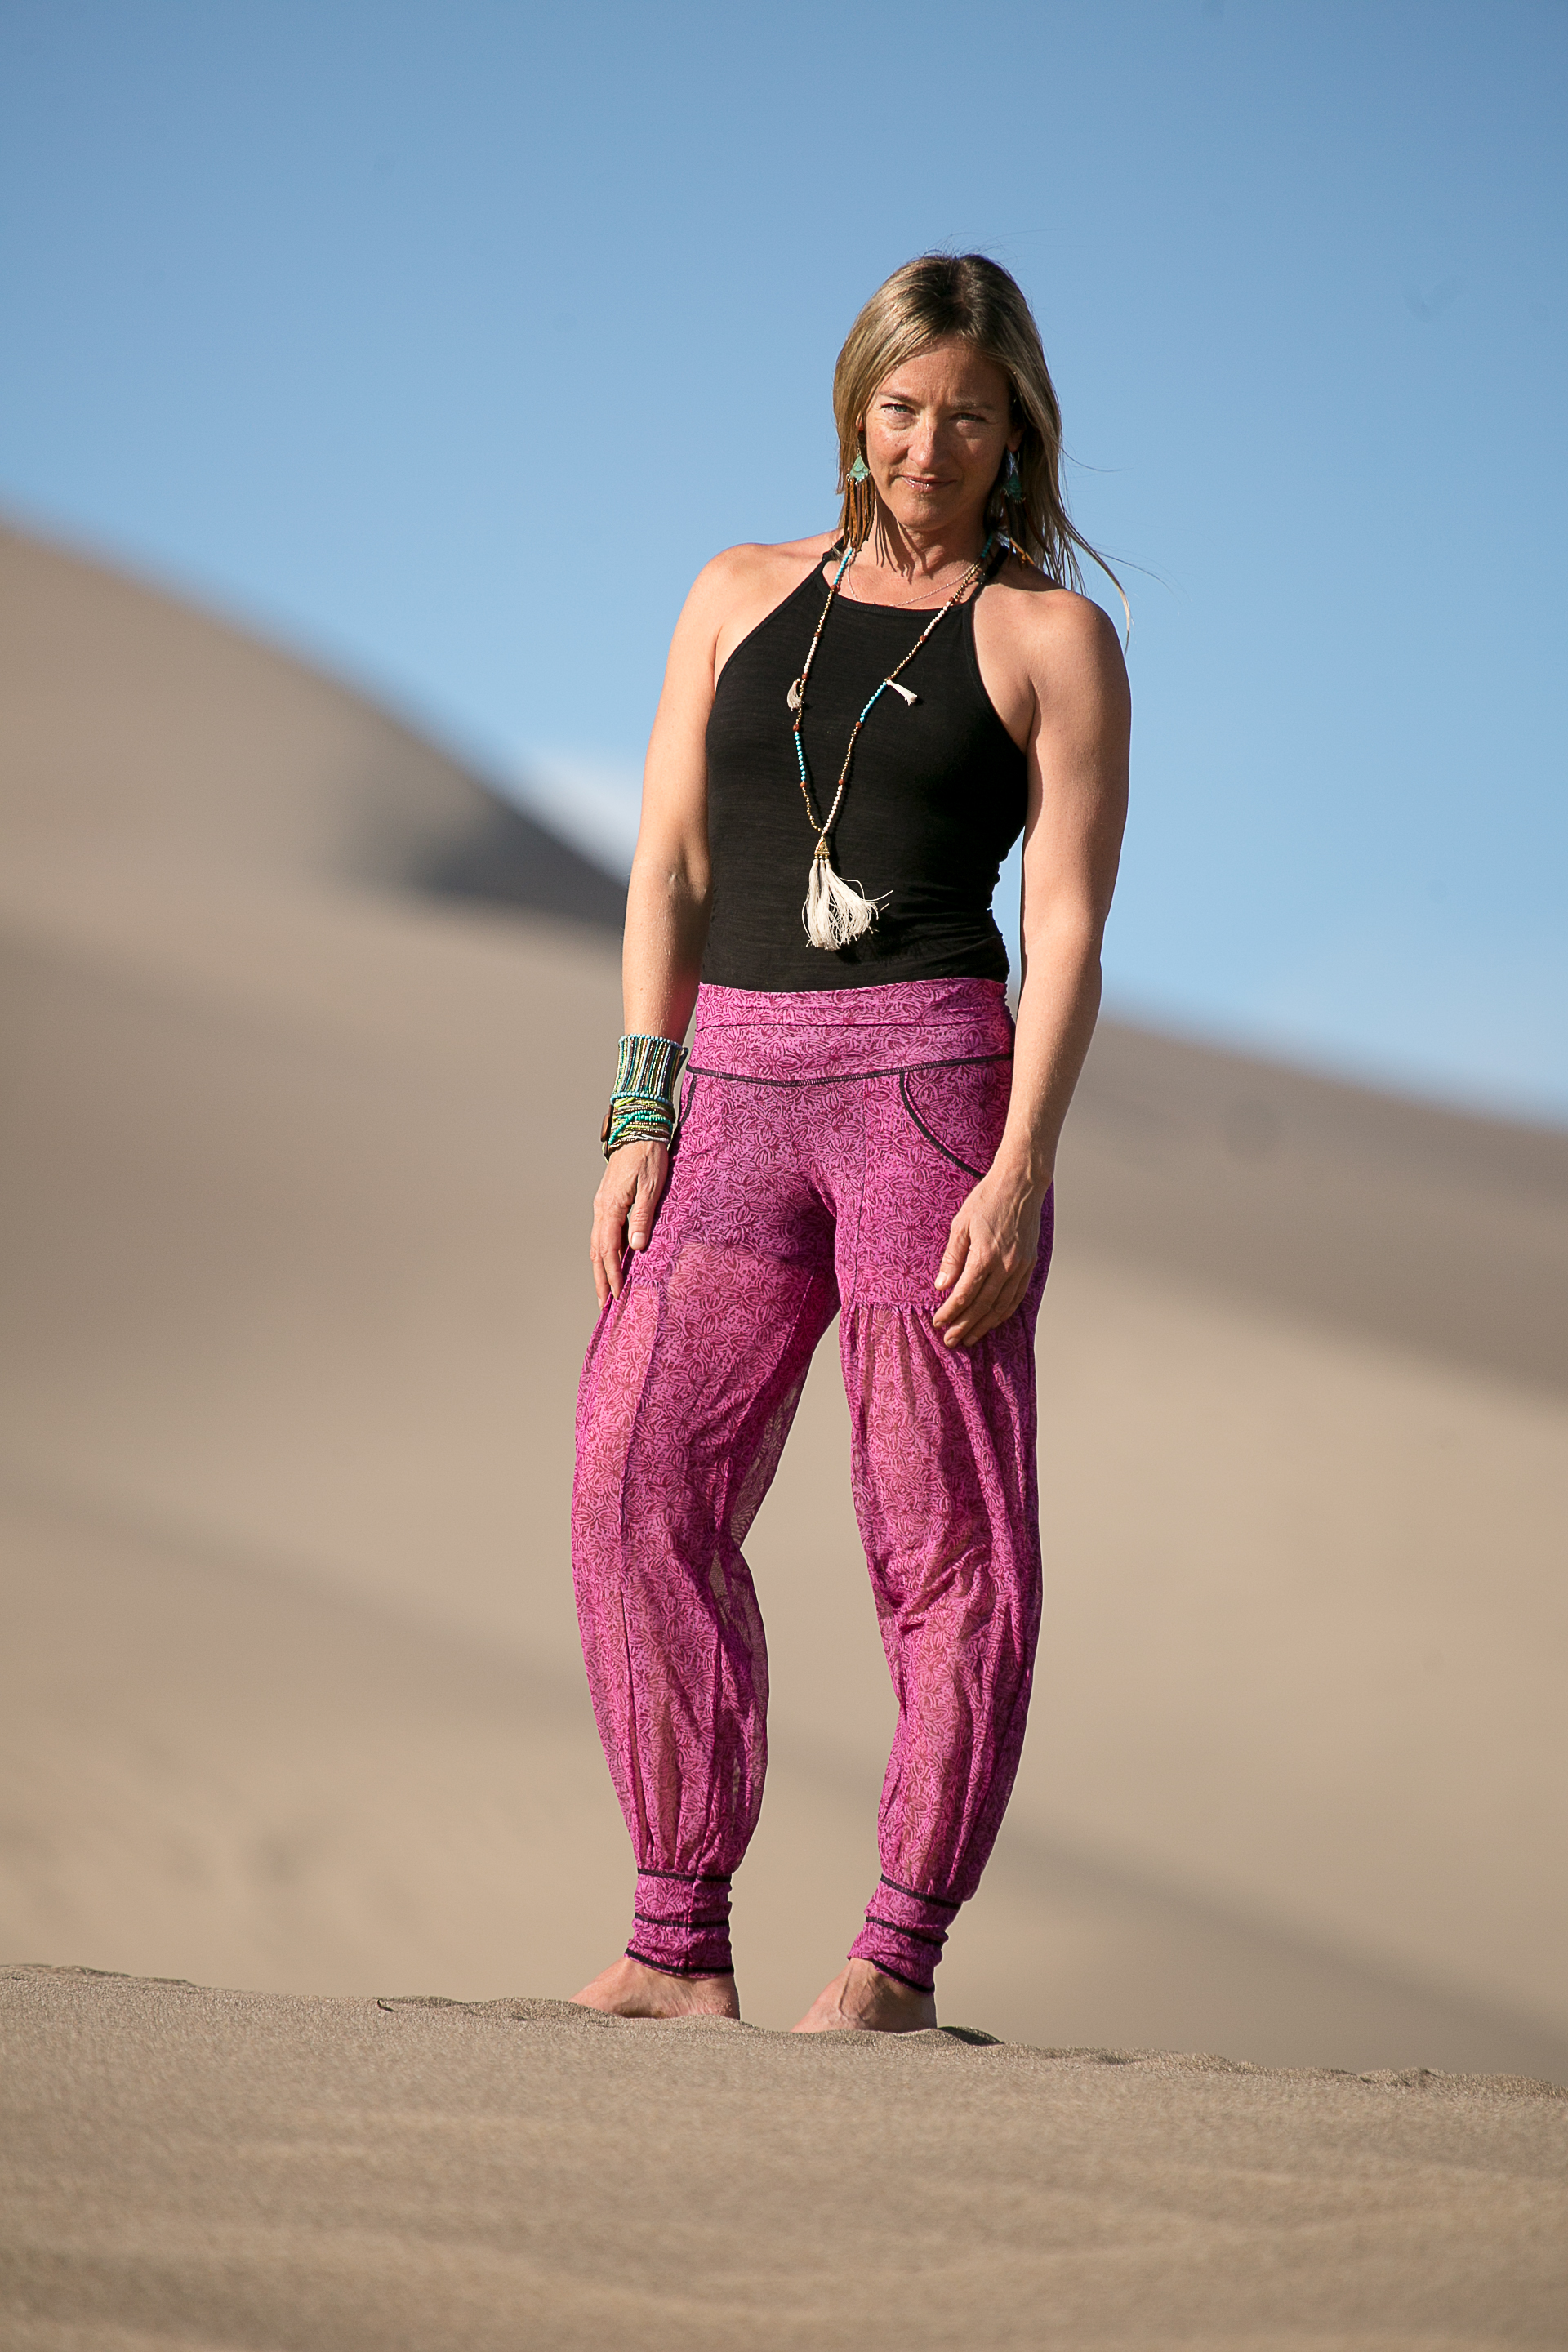 """Cool mesh fabric conceived for the beach or resort wick drys and silky to the touch. Our newest and dare we say """" Our Best"""" addition to the Autumn Teneyl Line.  This pant was made for everybody!  It has the comfy, casual vibe but can handle a night on the town with the right pair of shoes! We constructed it with a pull on waist for a great fit and added comfort. Two front pockets pocket for style and a hidden pocket to keep your valuables safe. Who doesn't love pockets! You can push the cuff up and wear the leg as a cropped pant."""